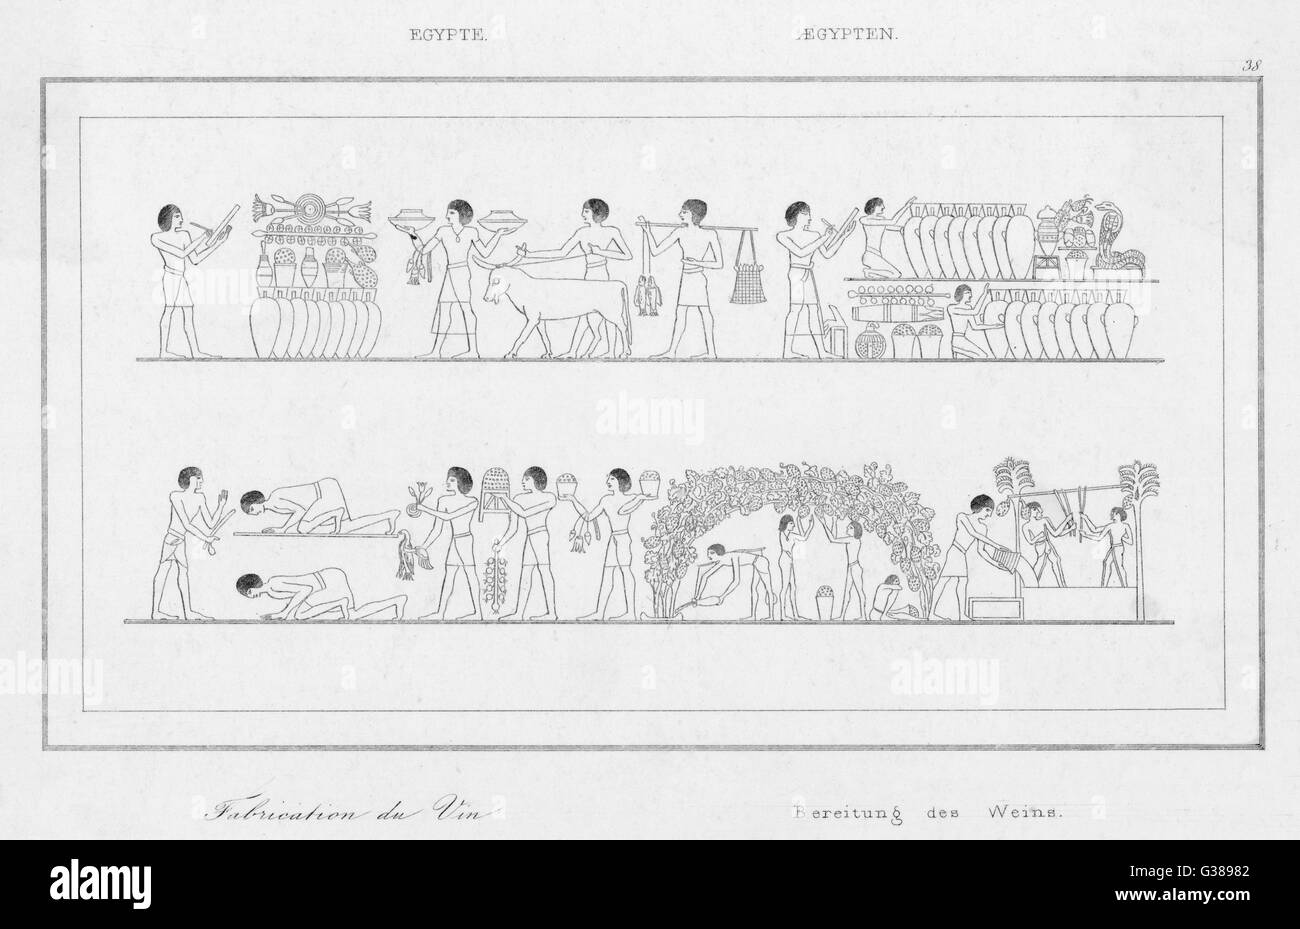 Ancient Egyptian wine  cultivation - Stock Image